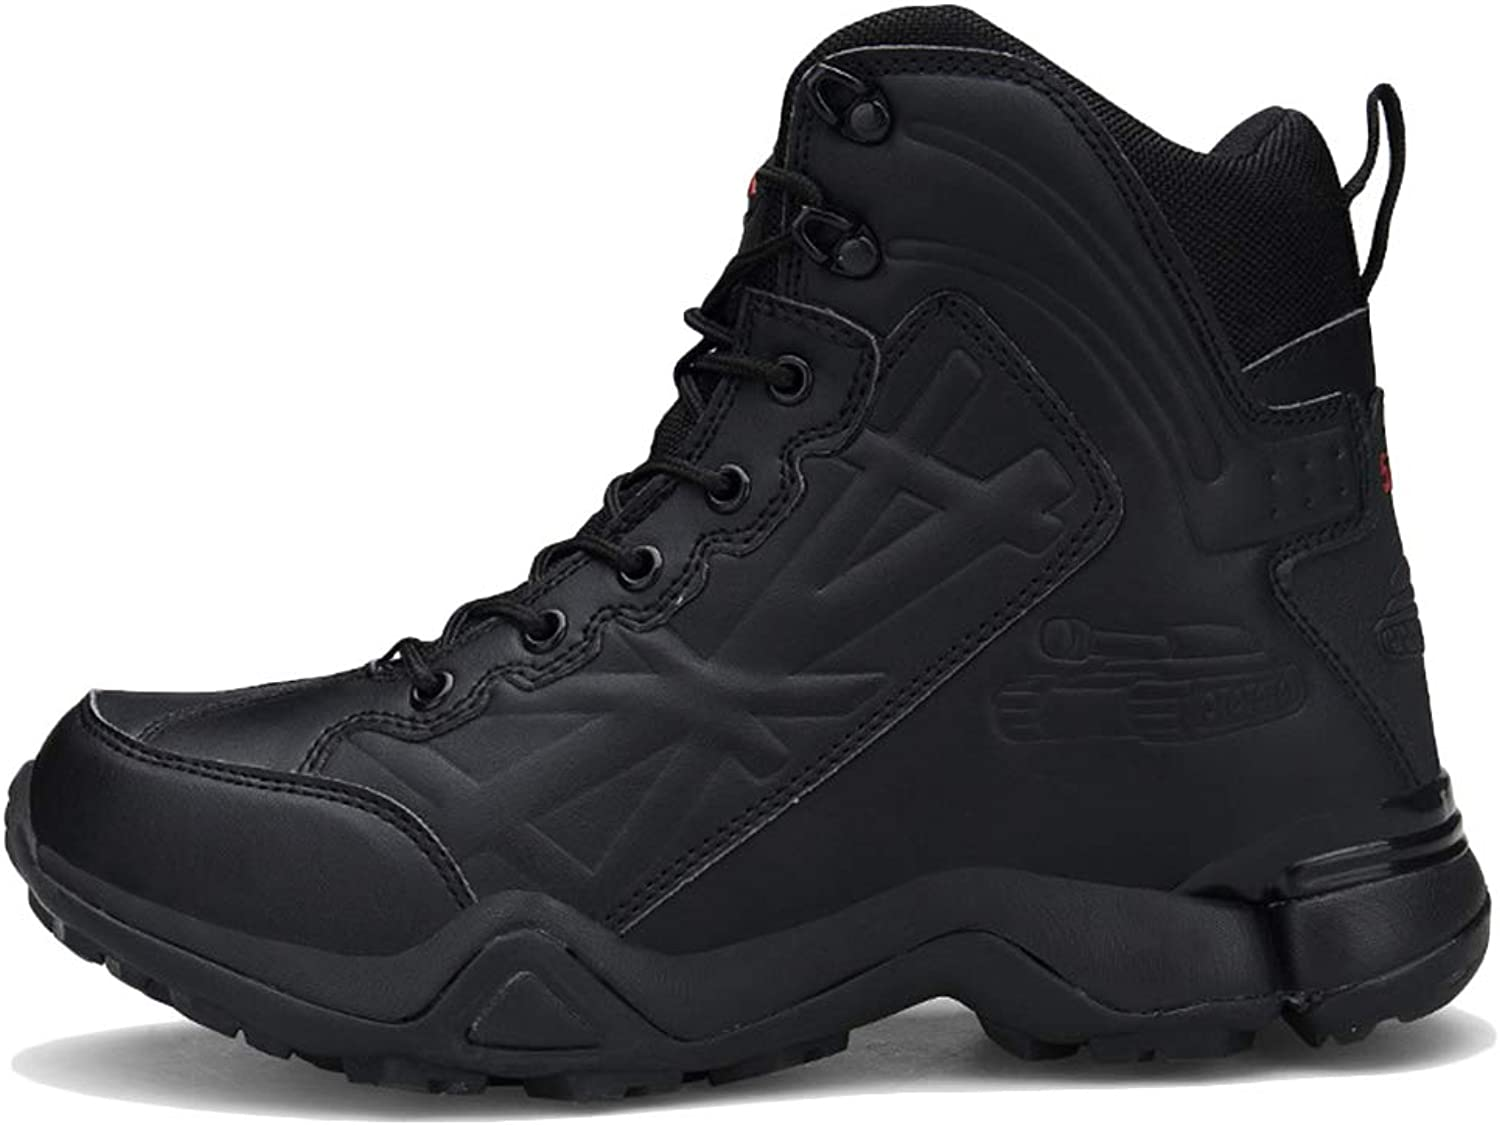 Men military boots Hiking tactical Desert Combat boots Trainers Suede Lace Up Climbing shoes Security Police Boots,Black-44